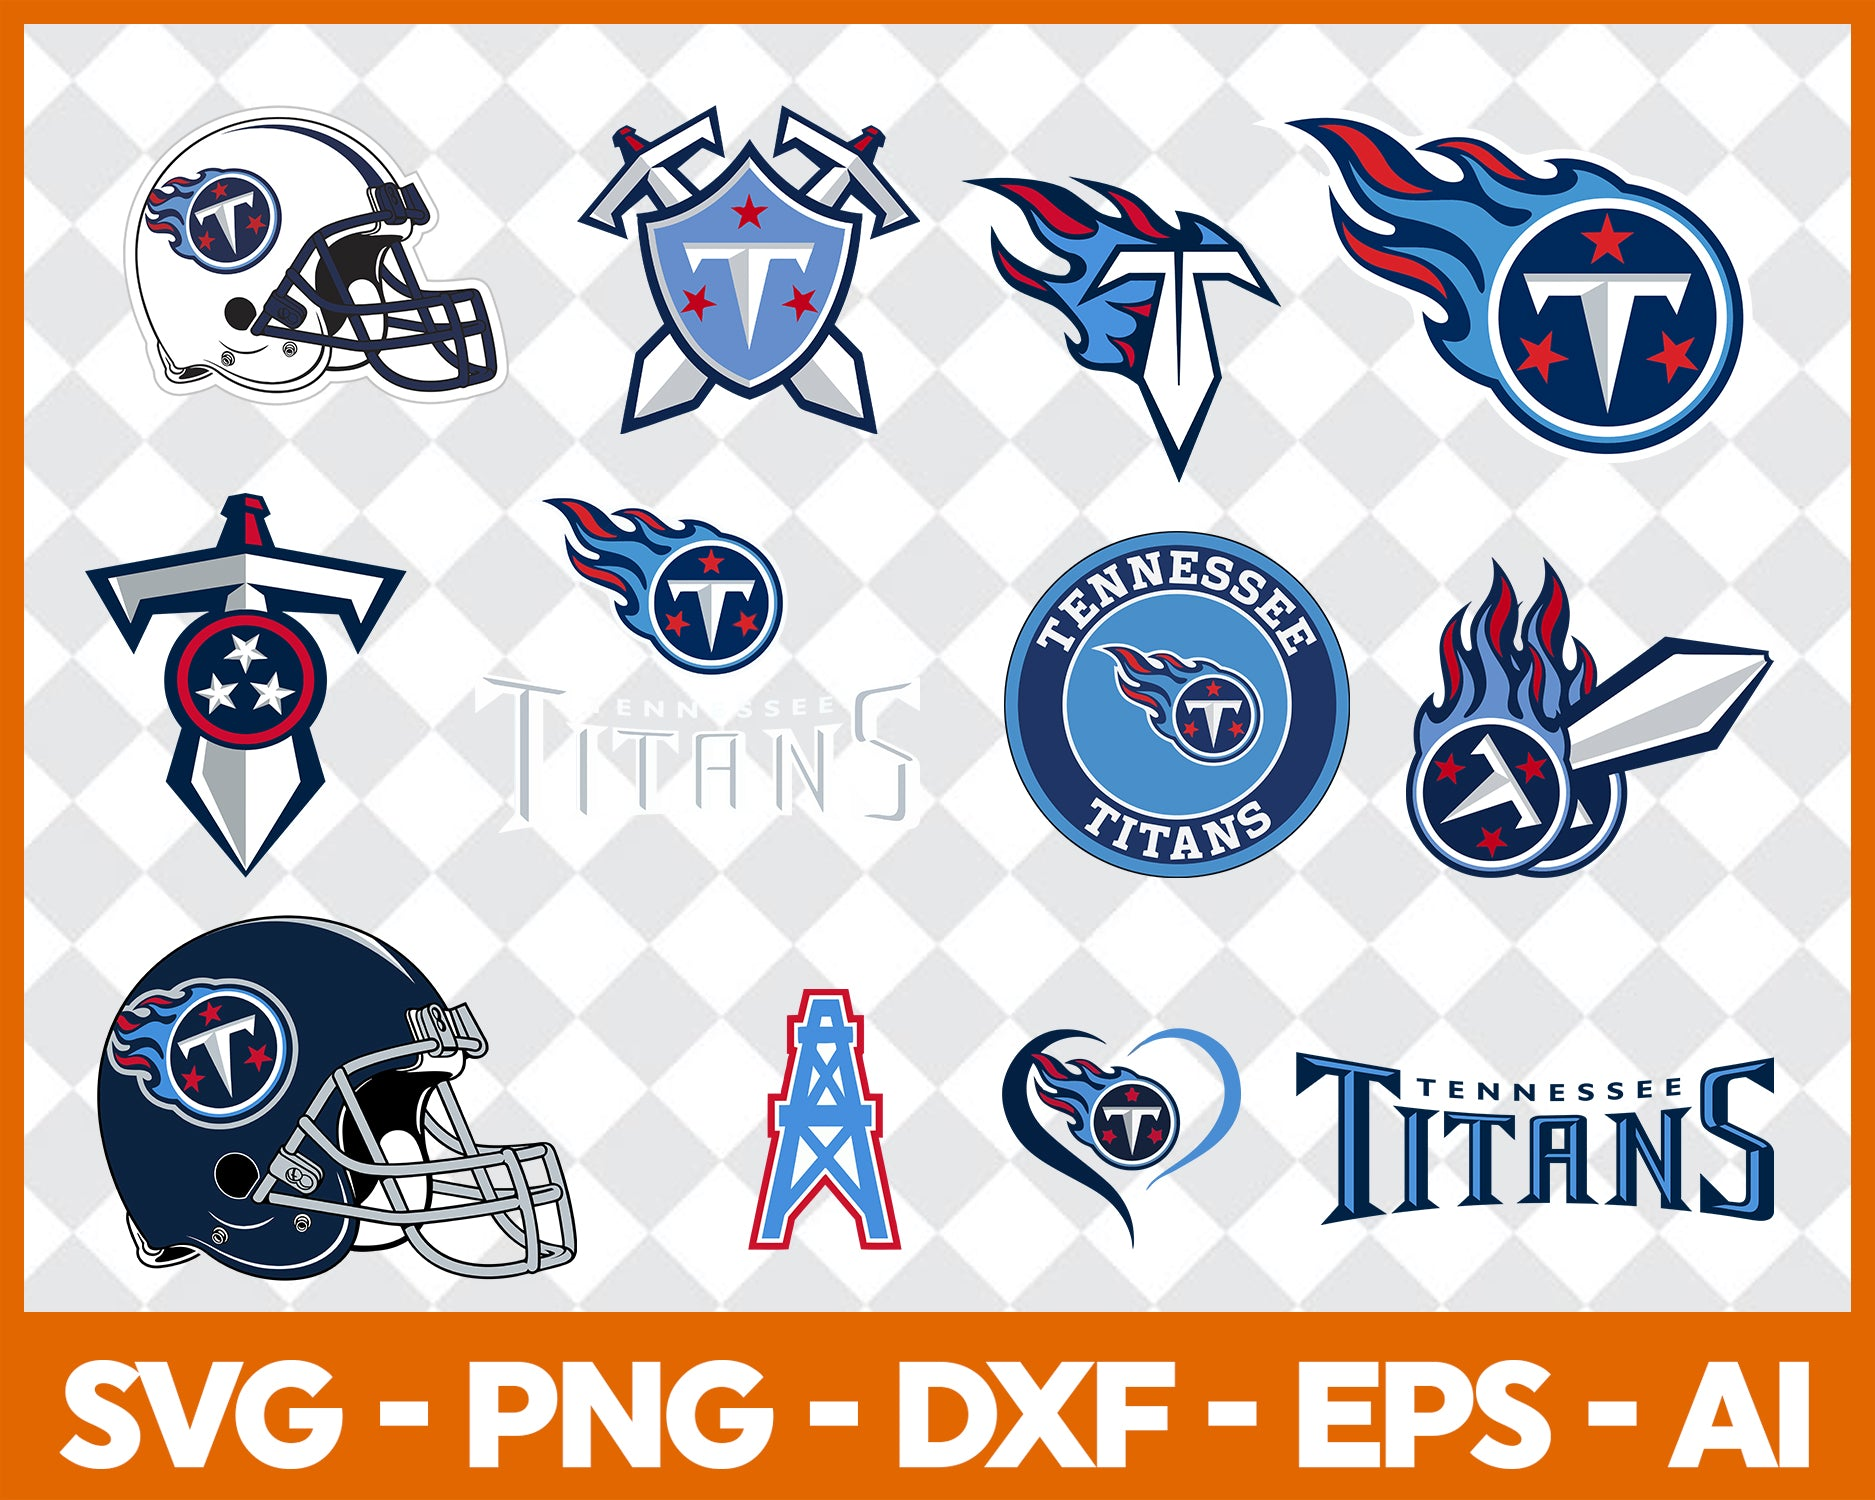 Tennessee Titans SVG,SVG Files For Silhouette, Files For Cricut, SVG, DXF, EPS, PNG Instant Download